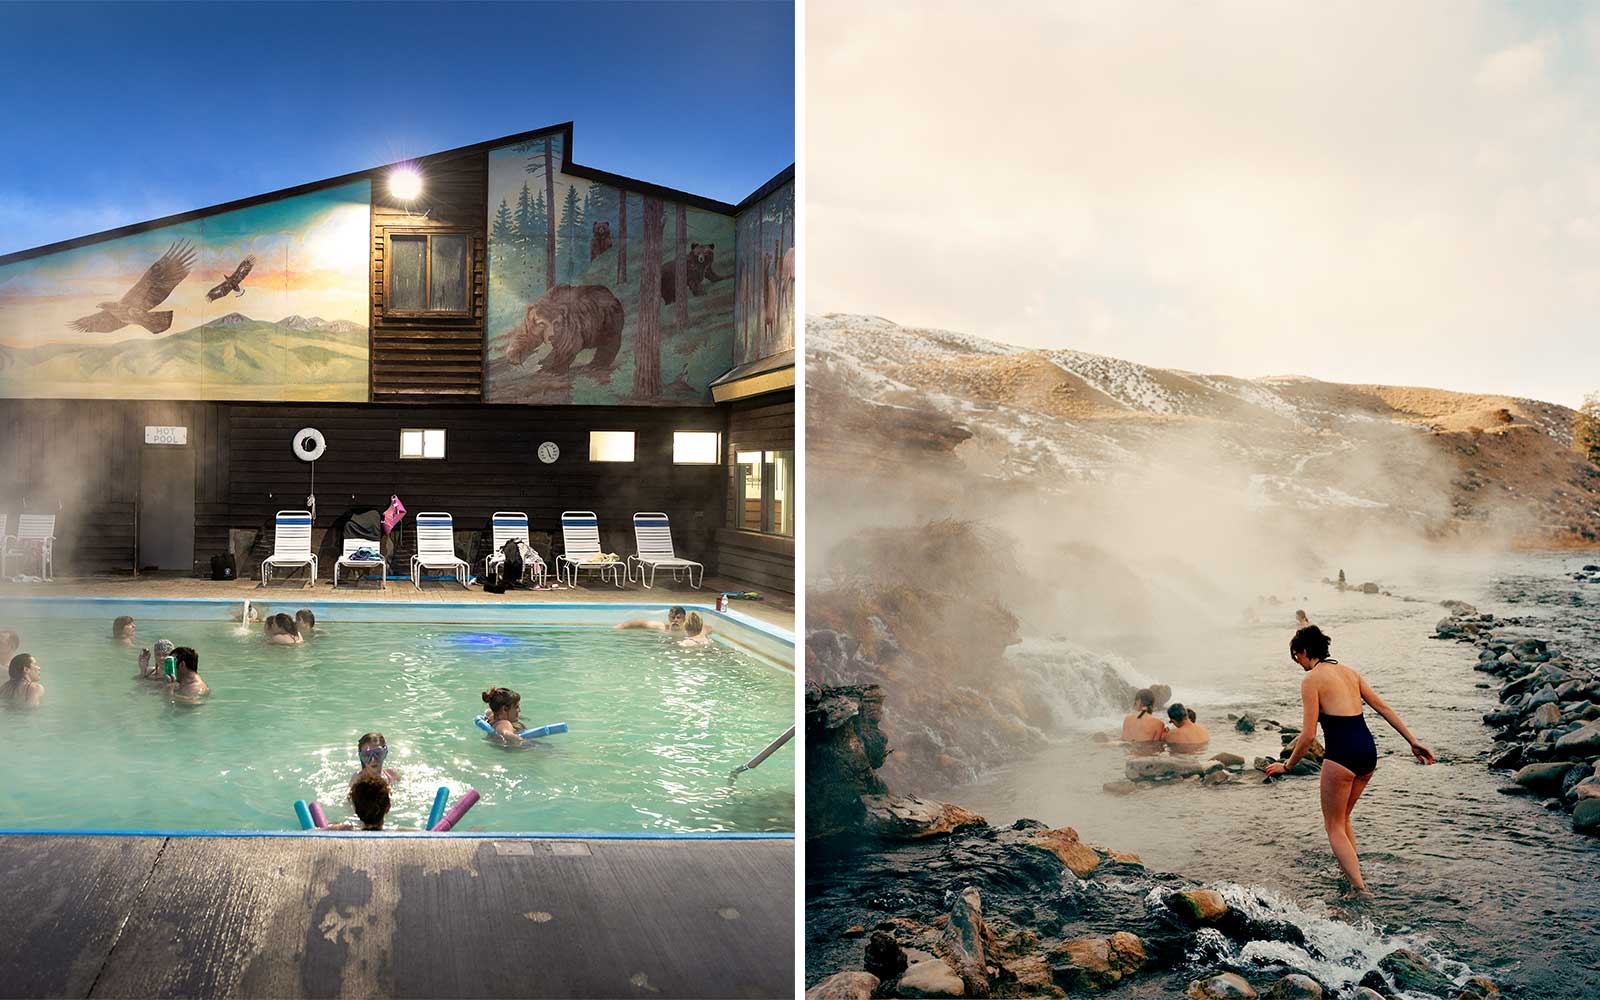 Scenes from Hot Springs in Montana